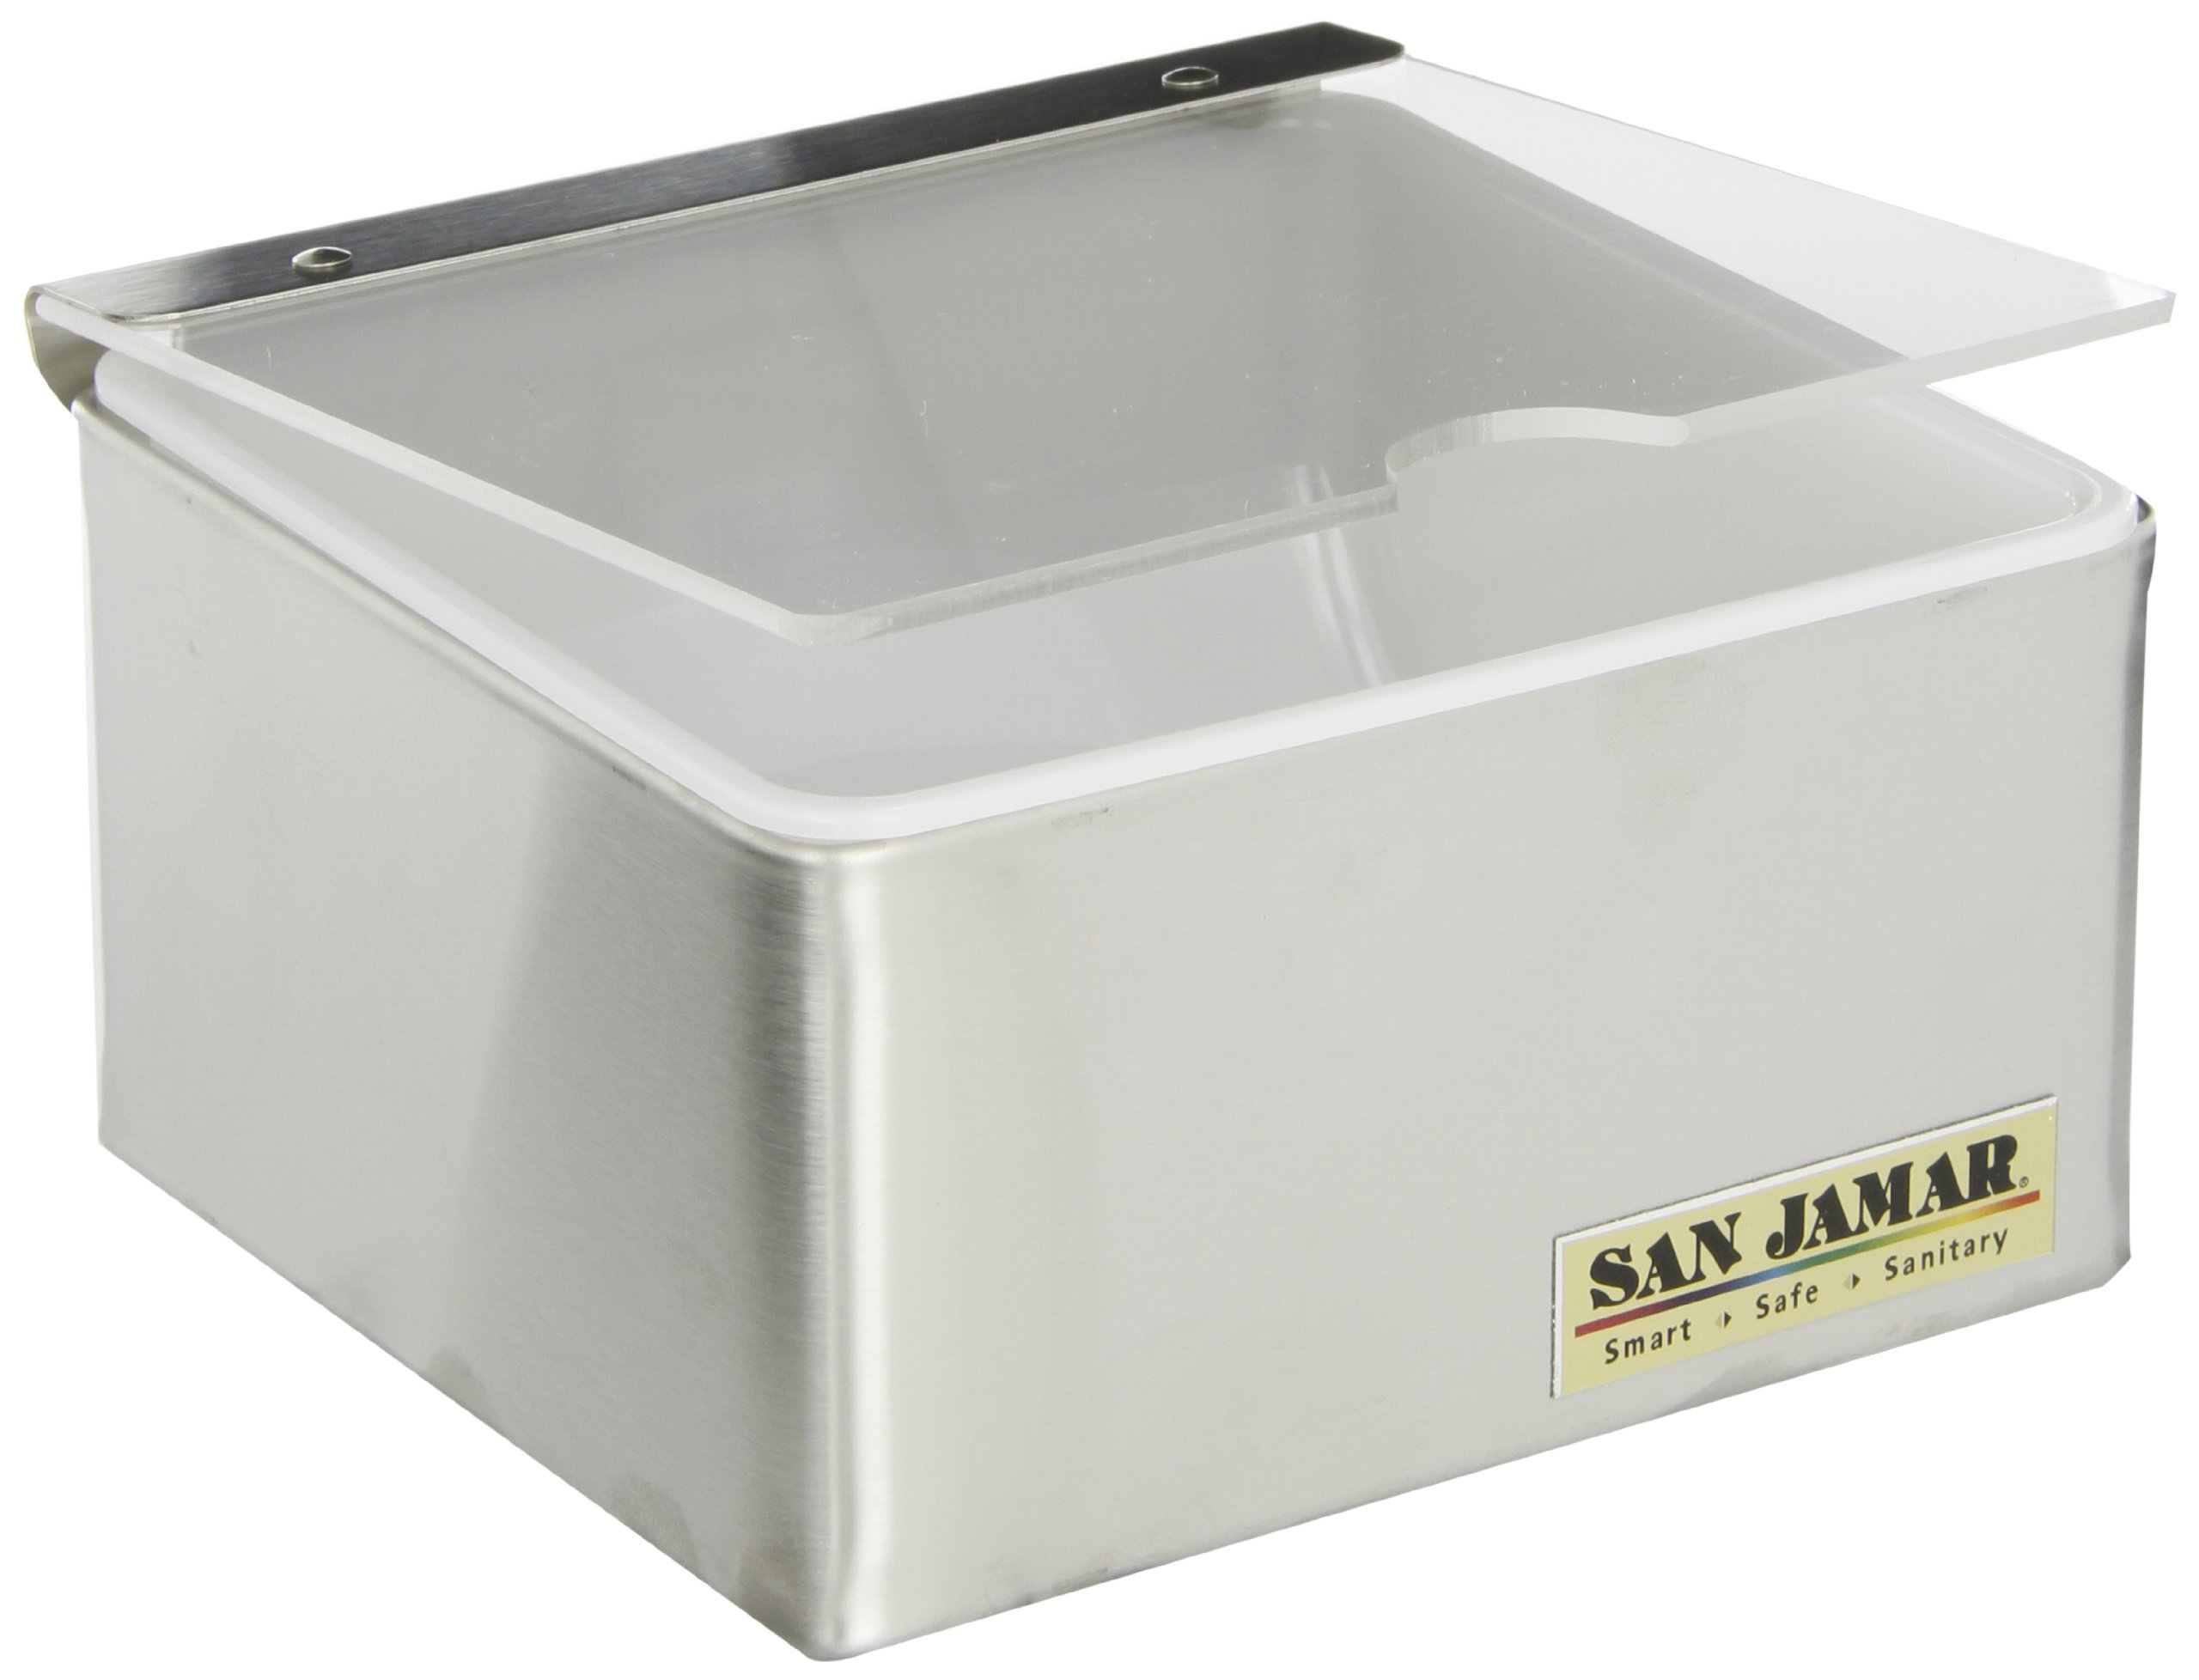 San Jamar B4061INL Stainless Steel Condiment Center with Individual Notched Lid, 6'' Width x 3-1/2'' Height x 5-3/4'' Depth